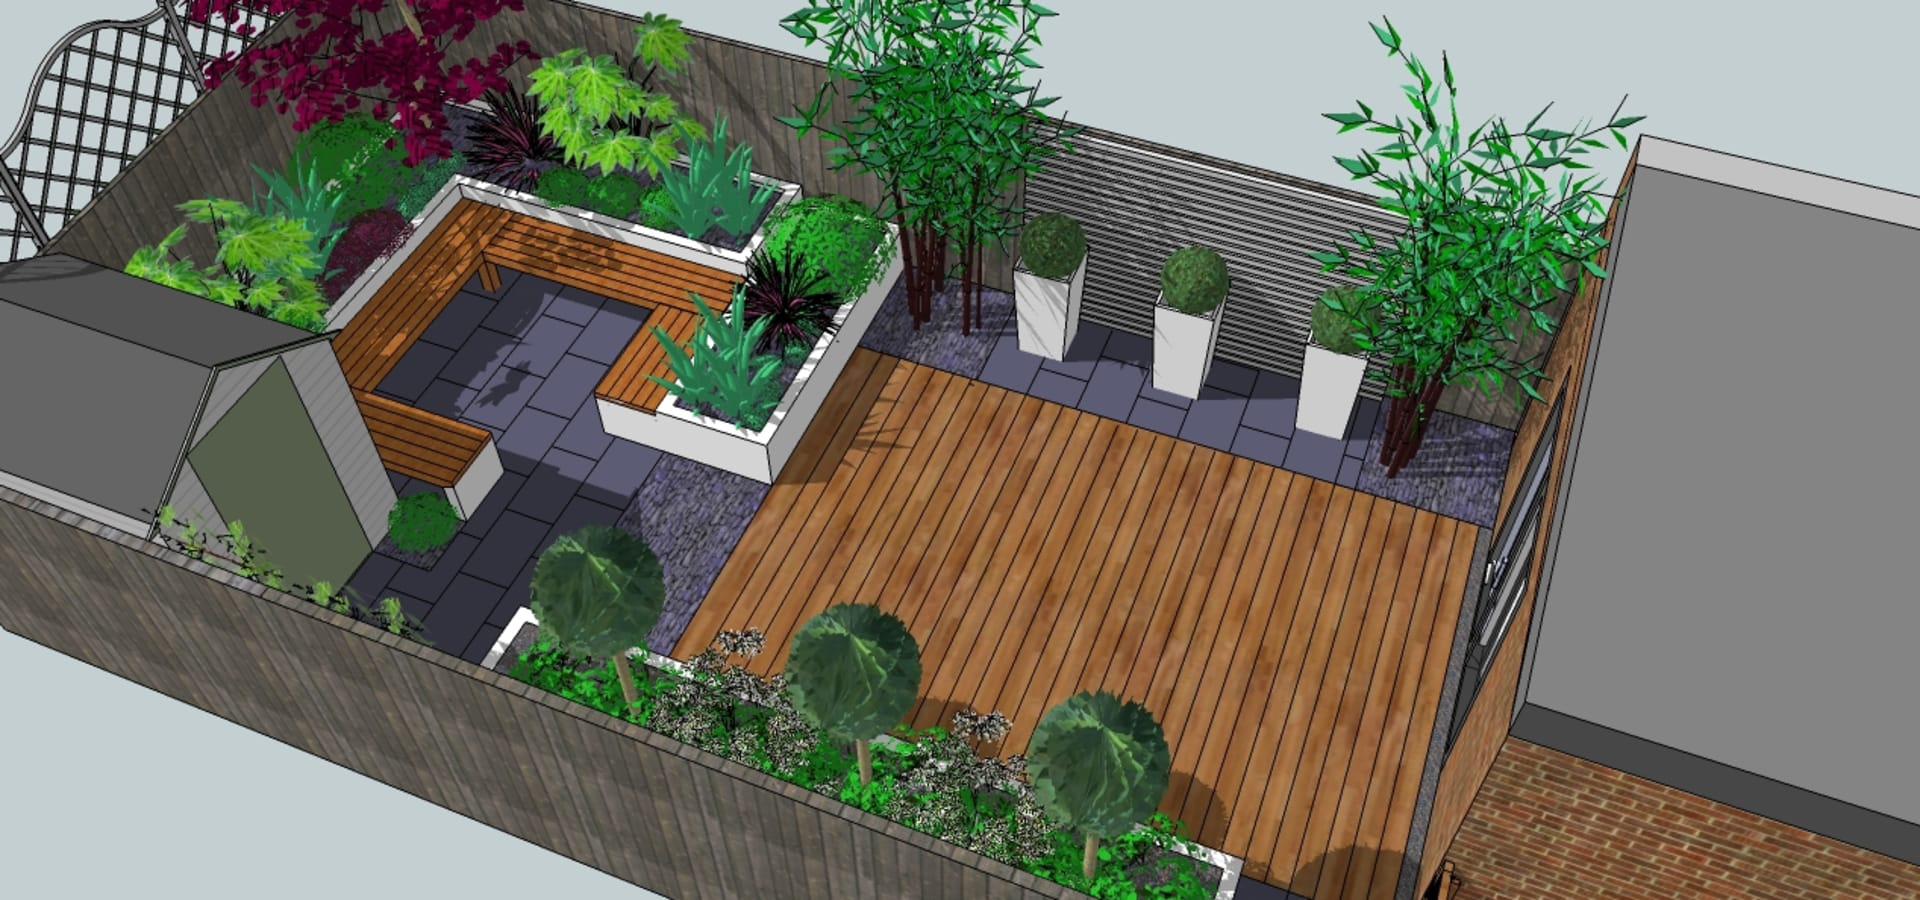 Bea Ray Garden Design Ltd